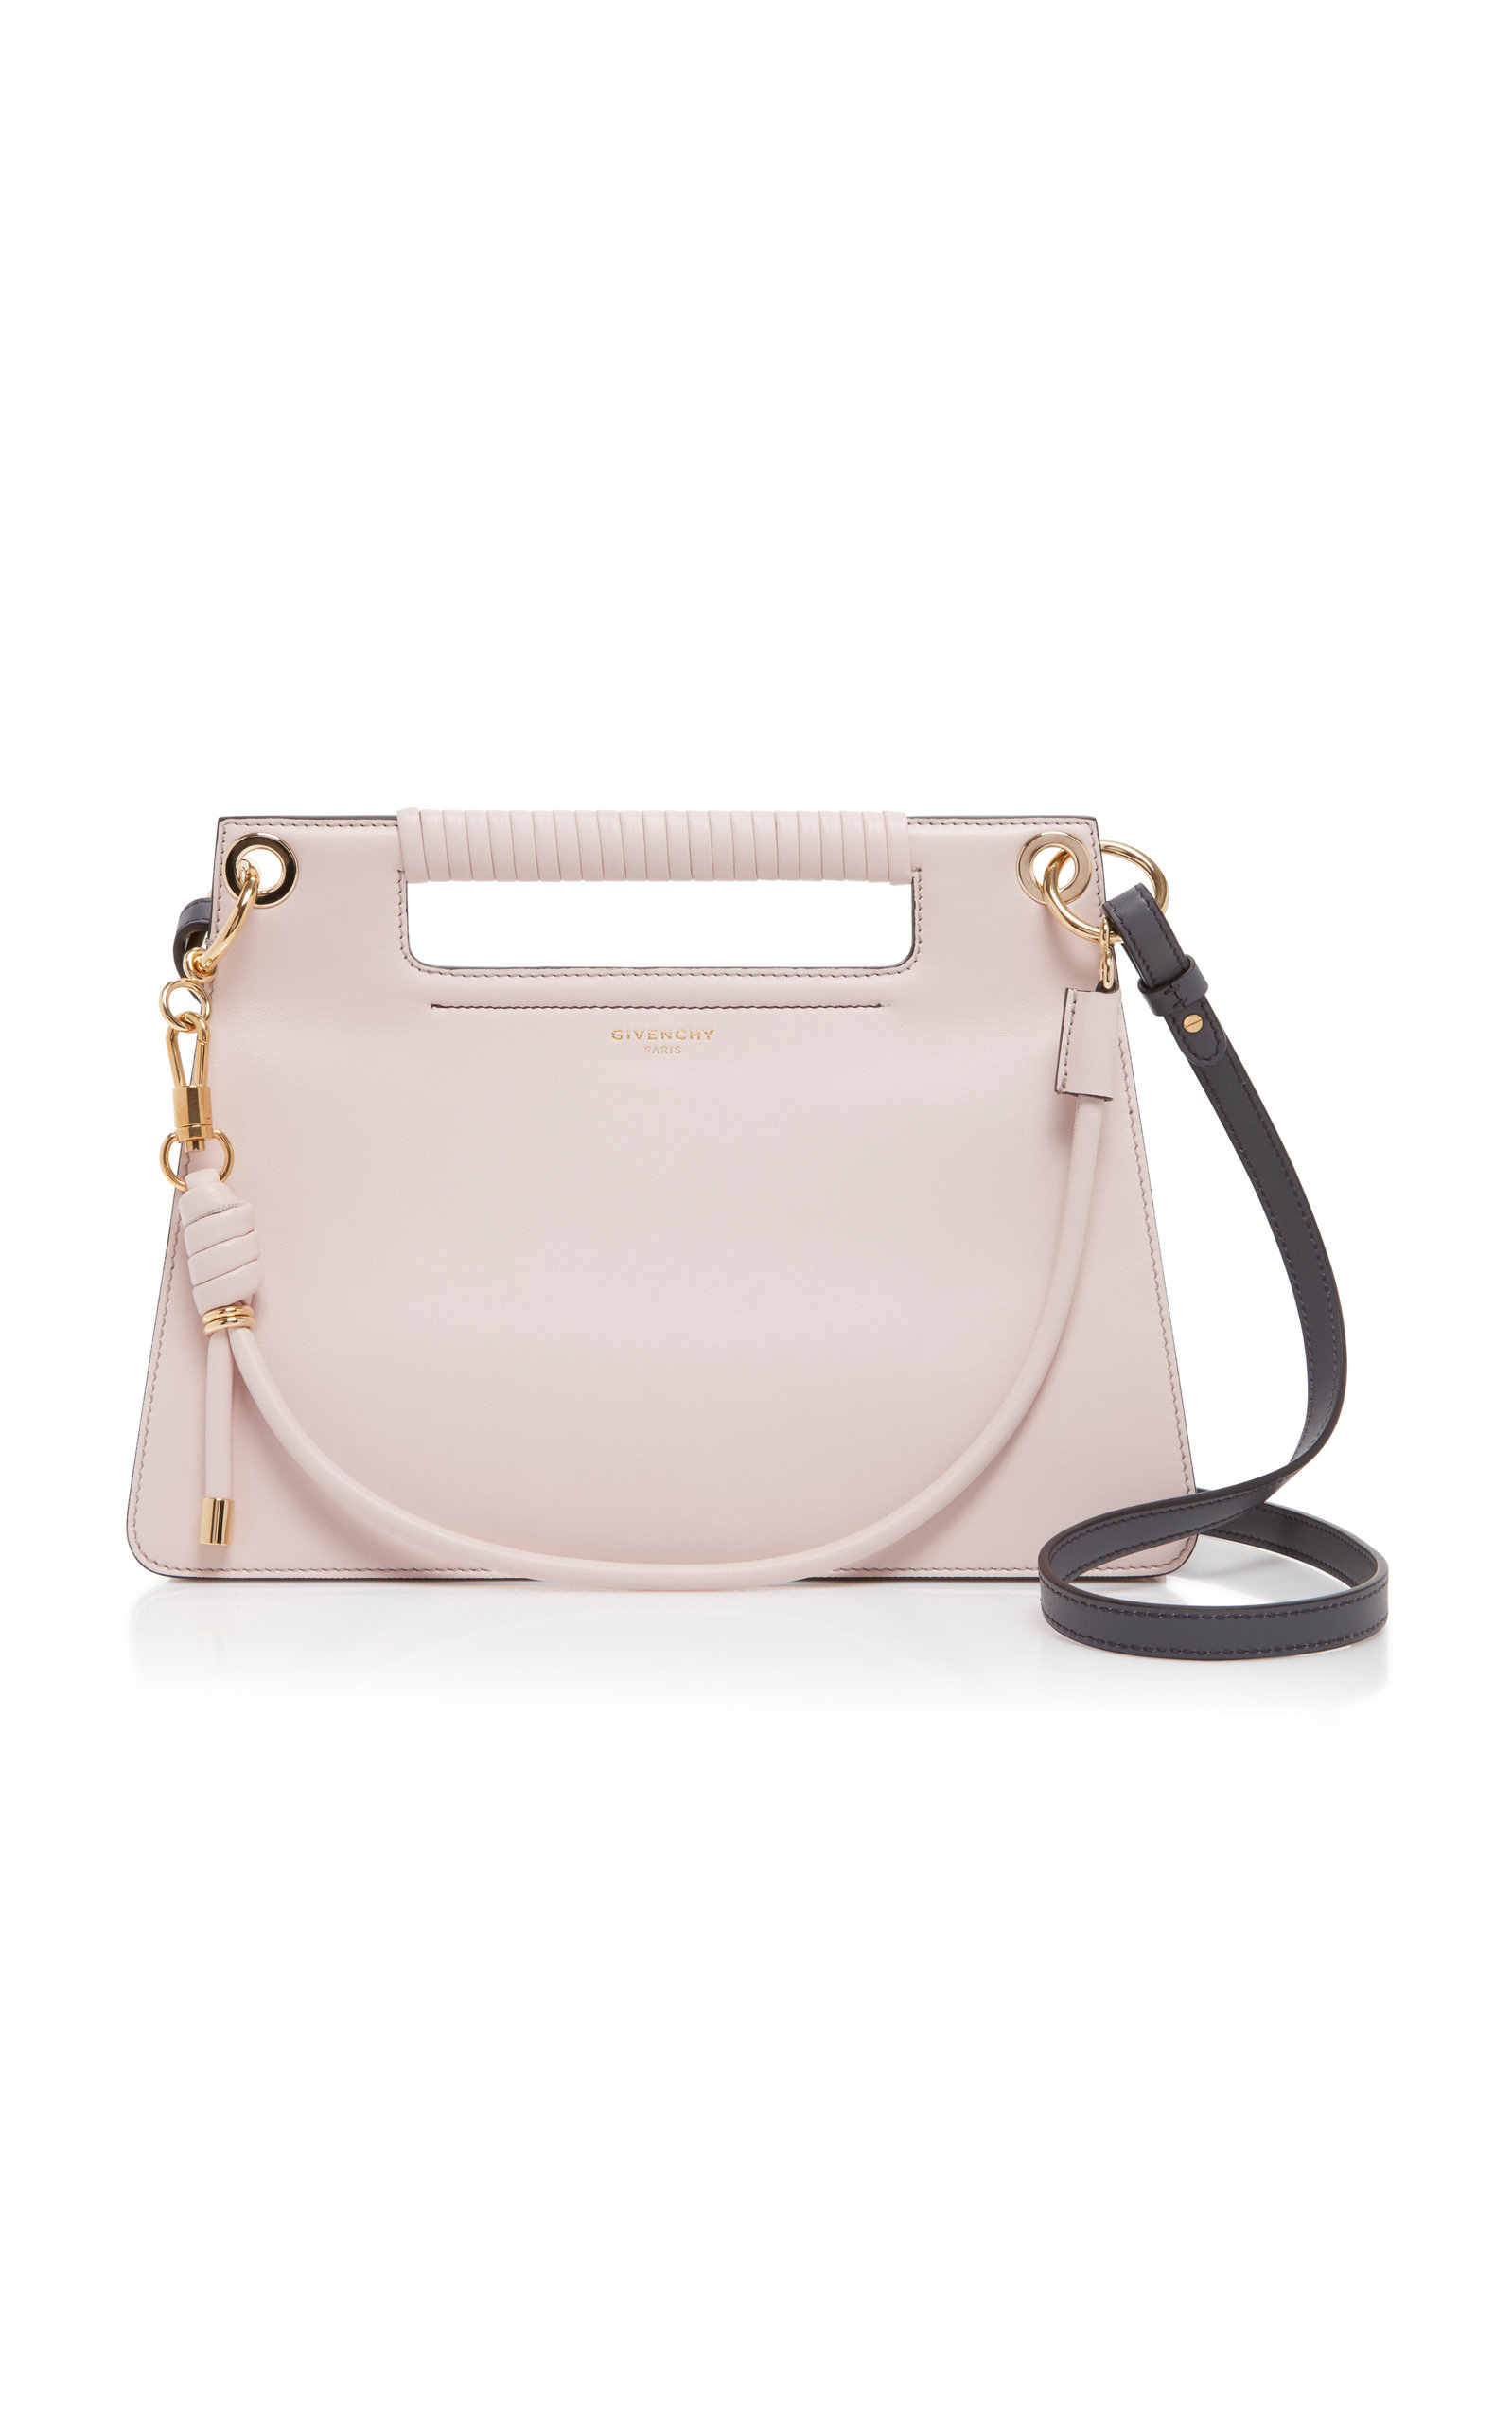 GIVENCHY | Givenchy Whip Small Leather Shoulder Bag | Goxip